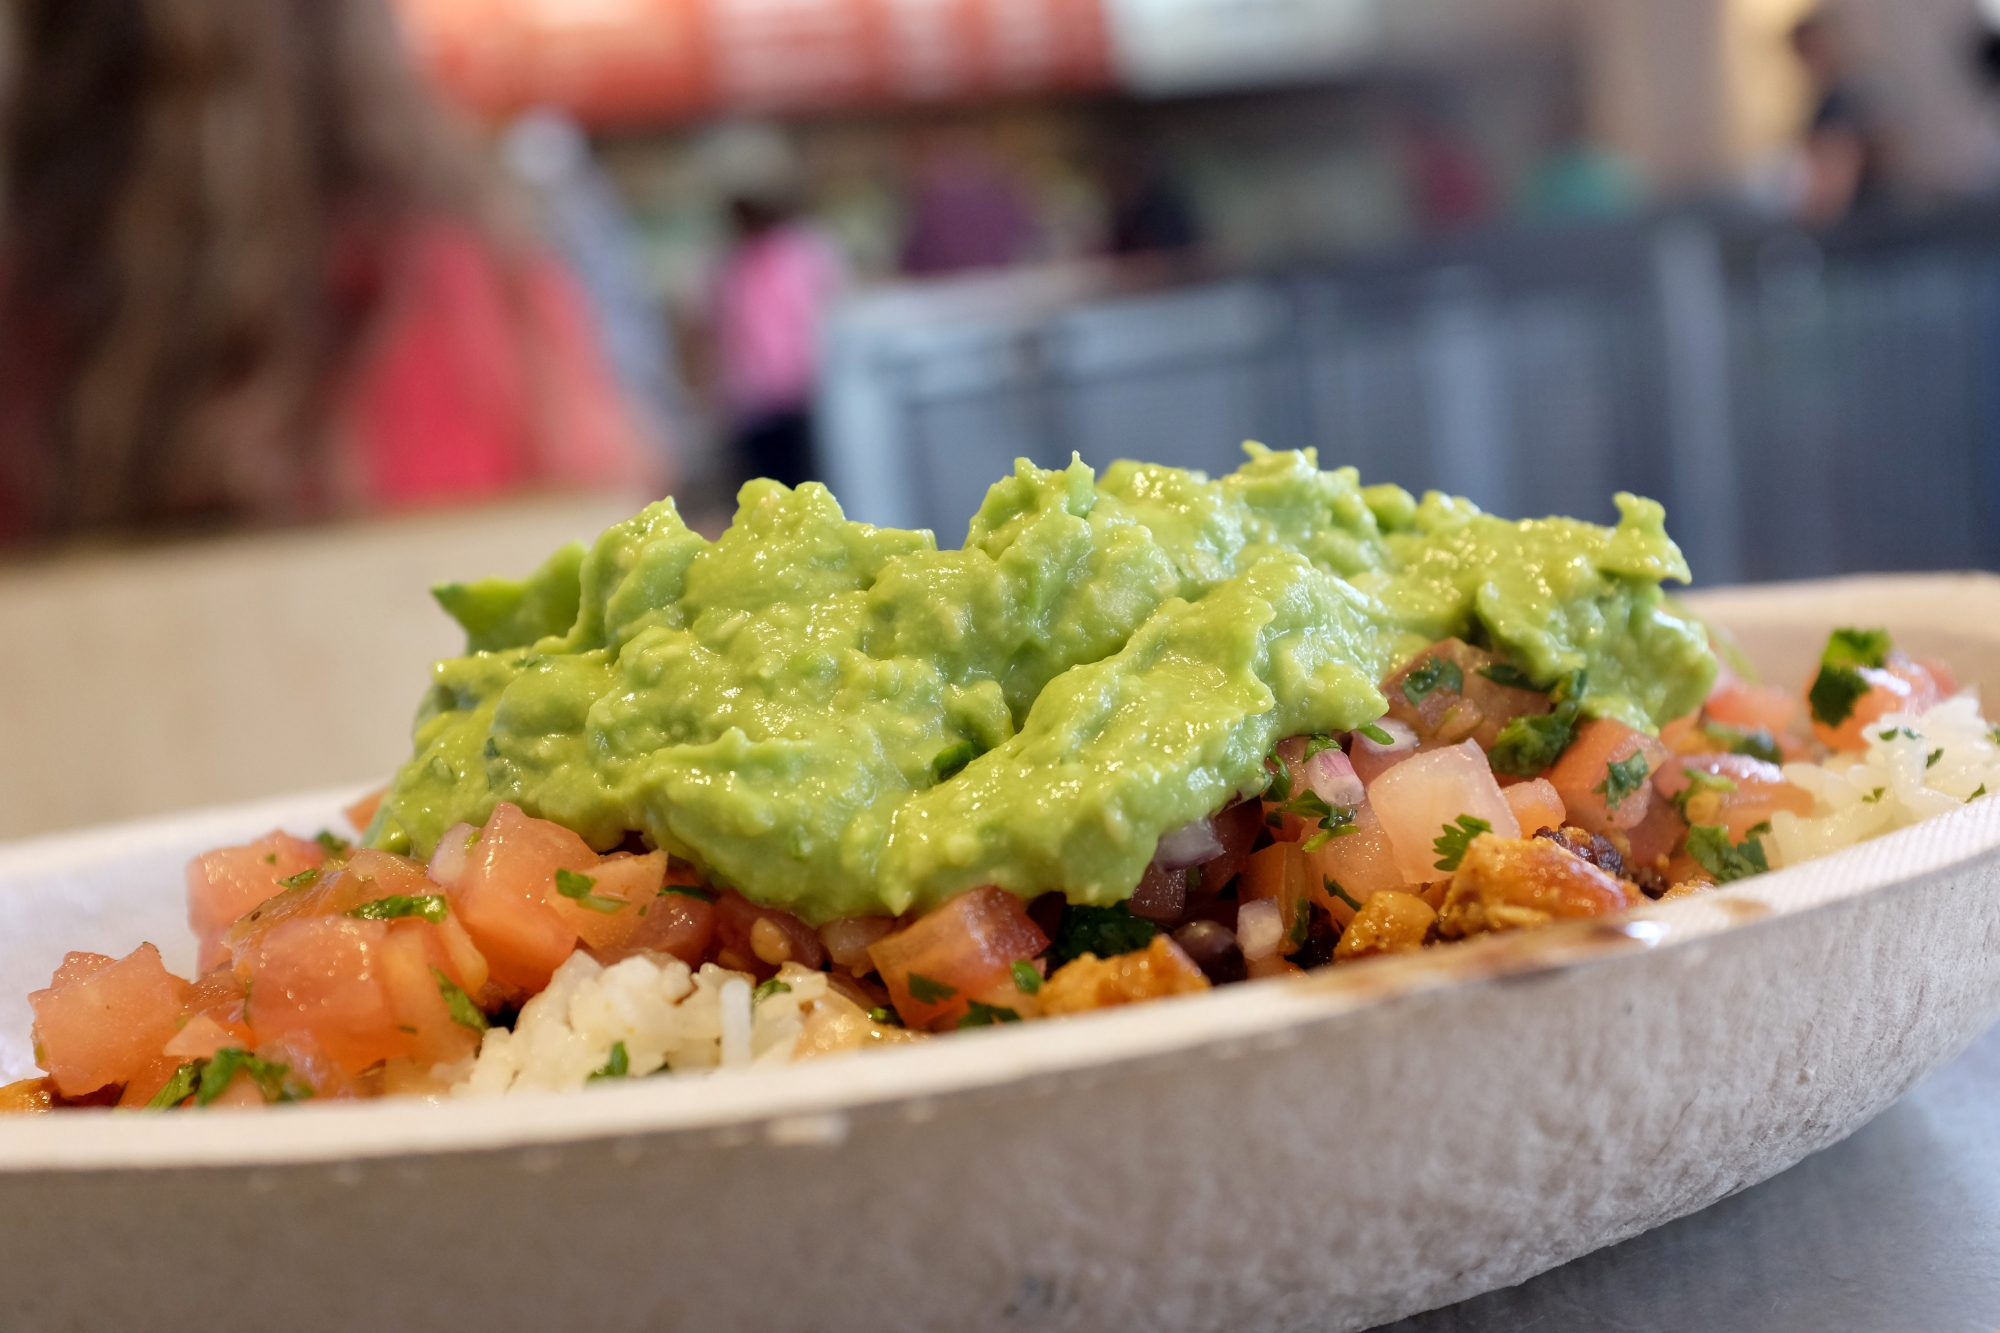 Chipotle Is Offering Free Guac Today In Honor of National Avocado Day